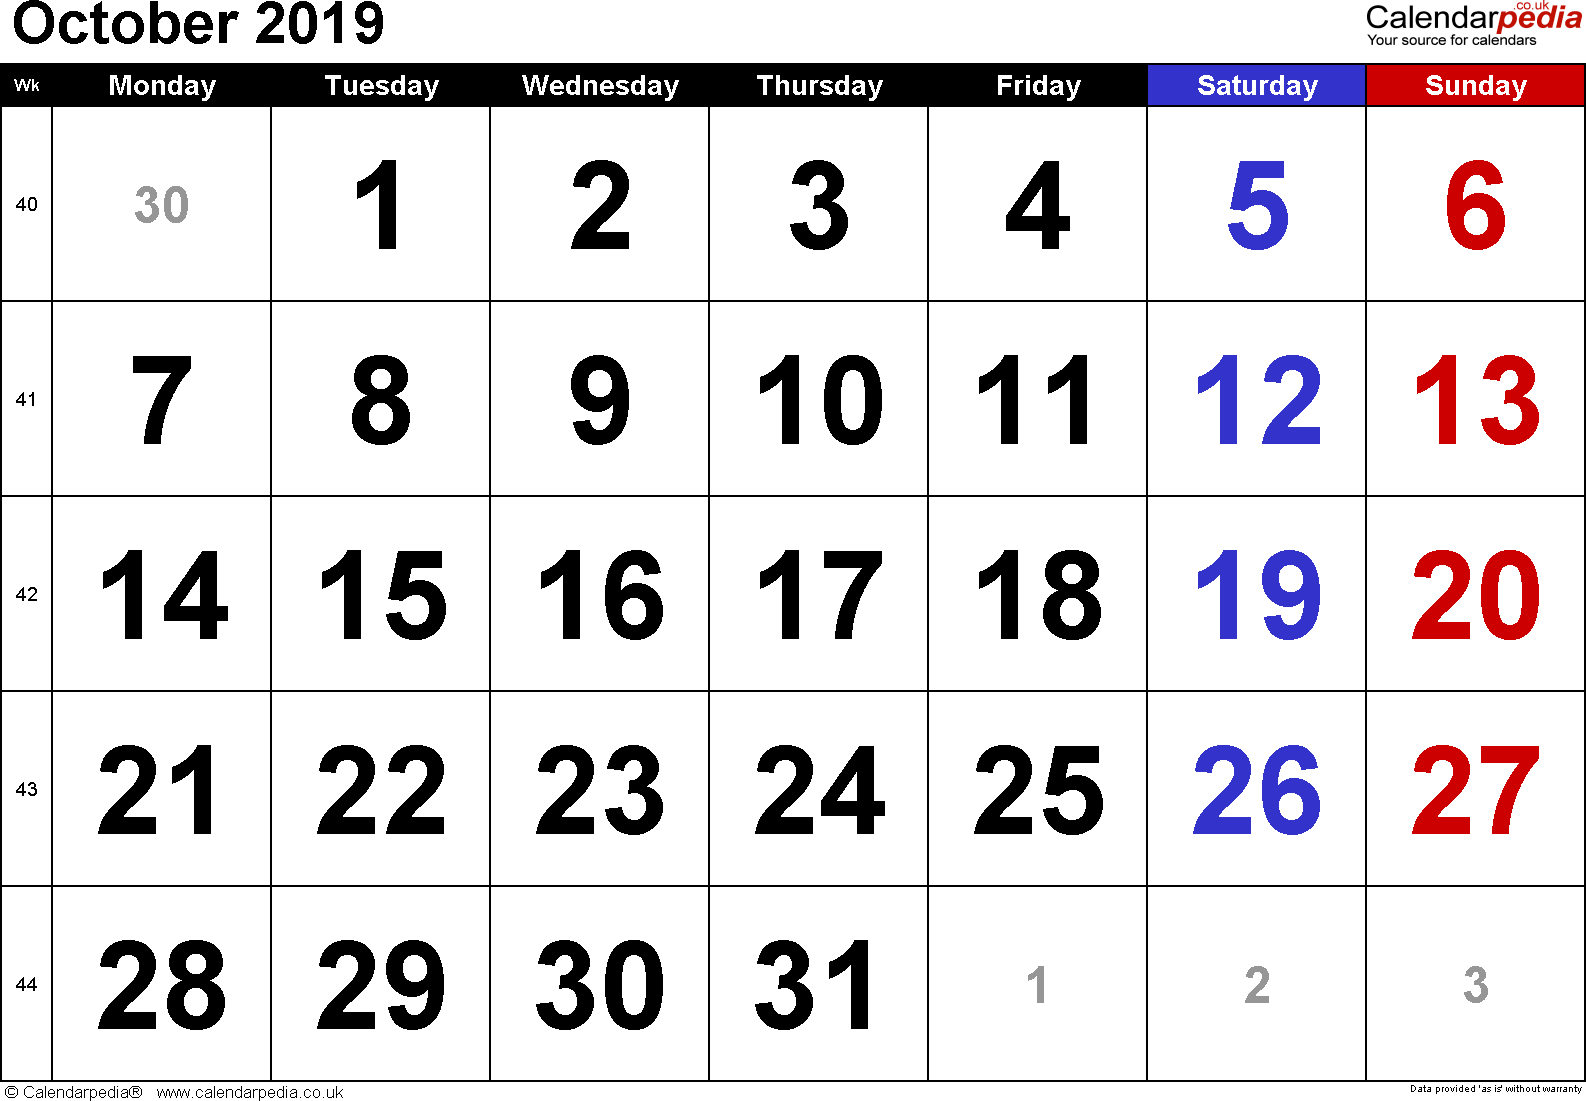 Calendar October 2019, landscape orientation, large numerals, 1 page, with UK bank holidays and week numbers